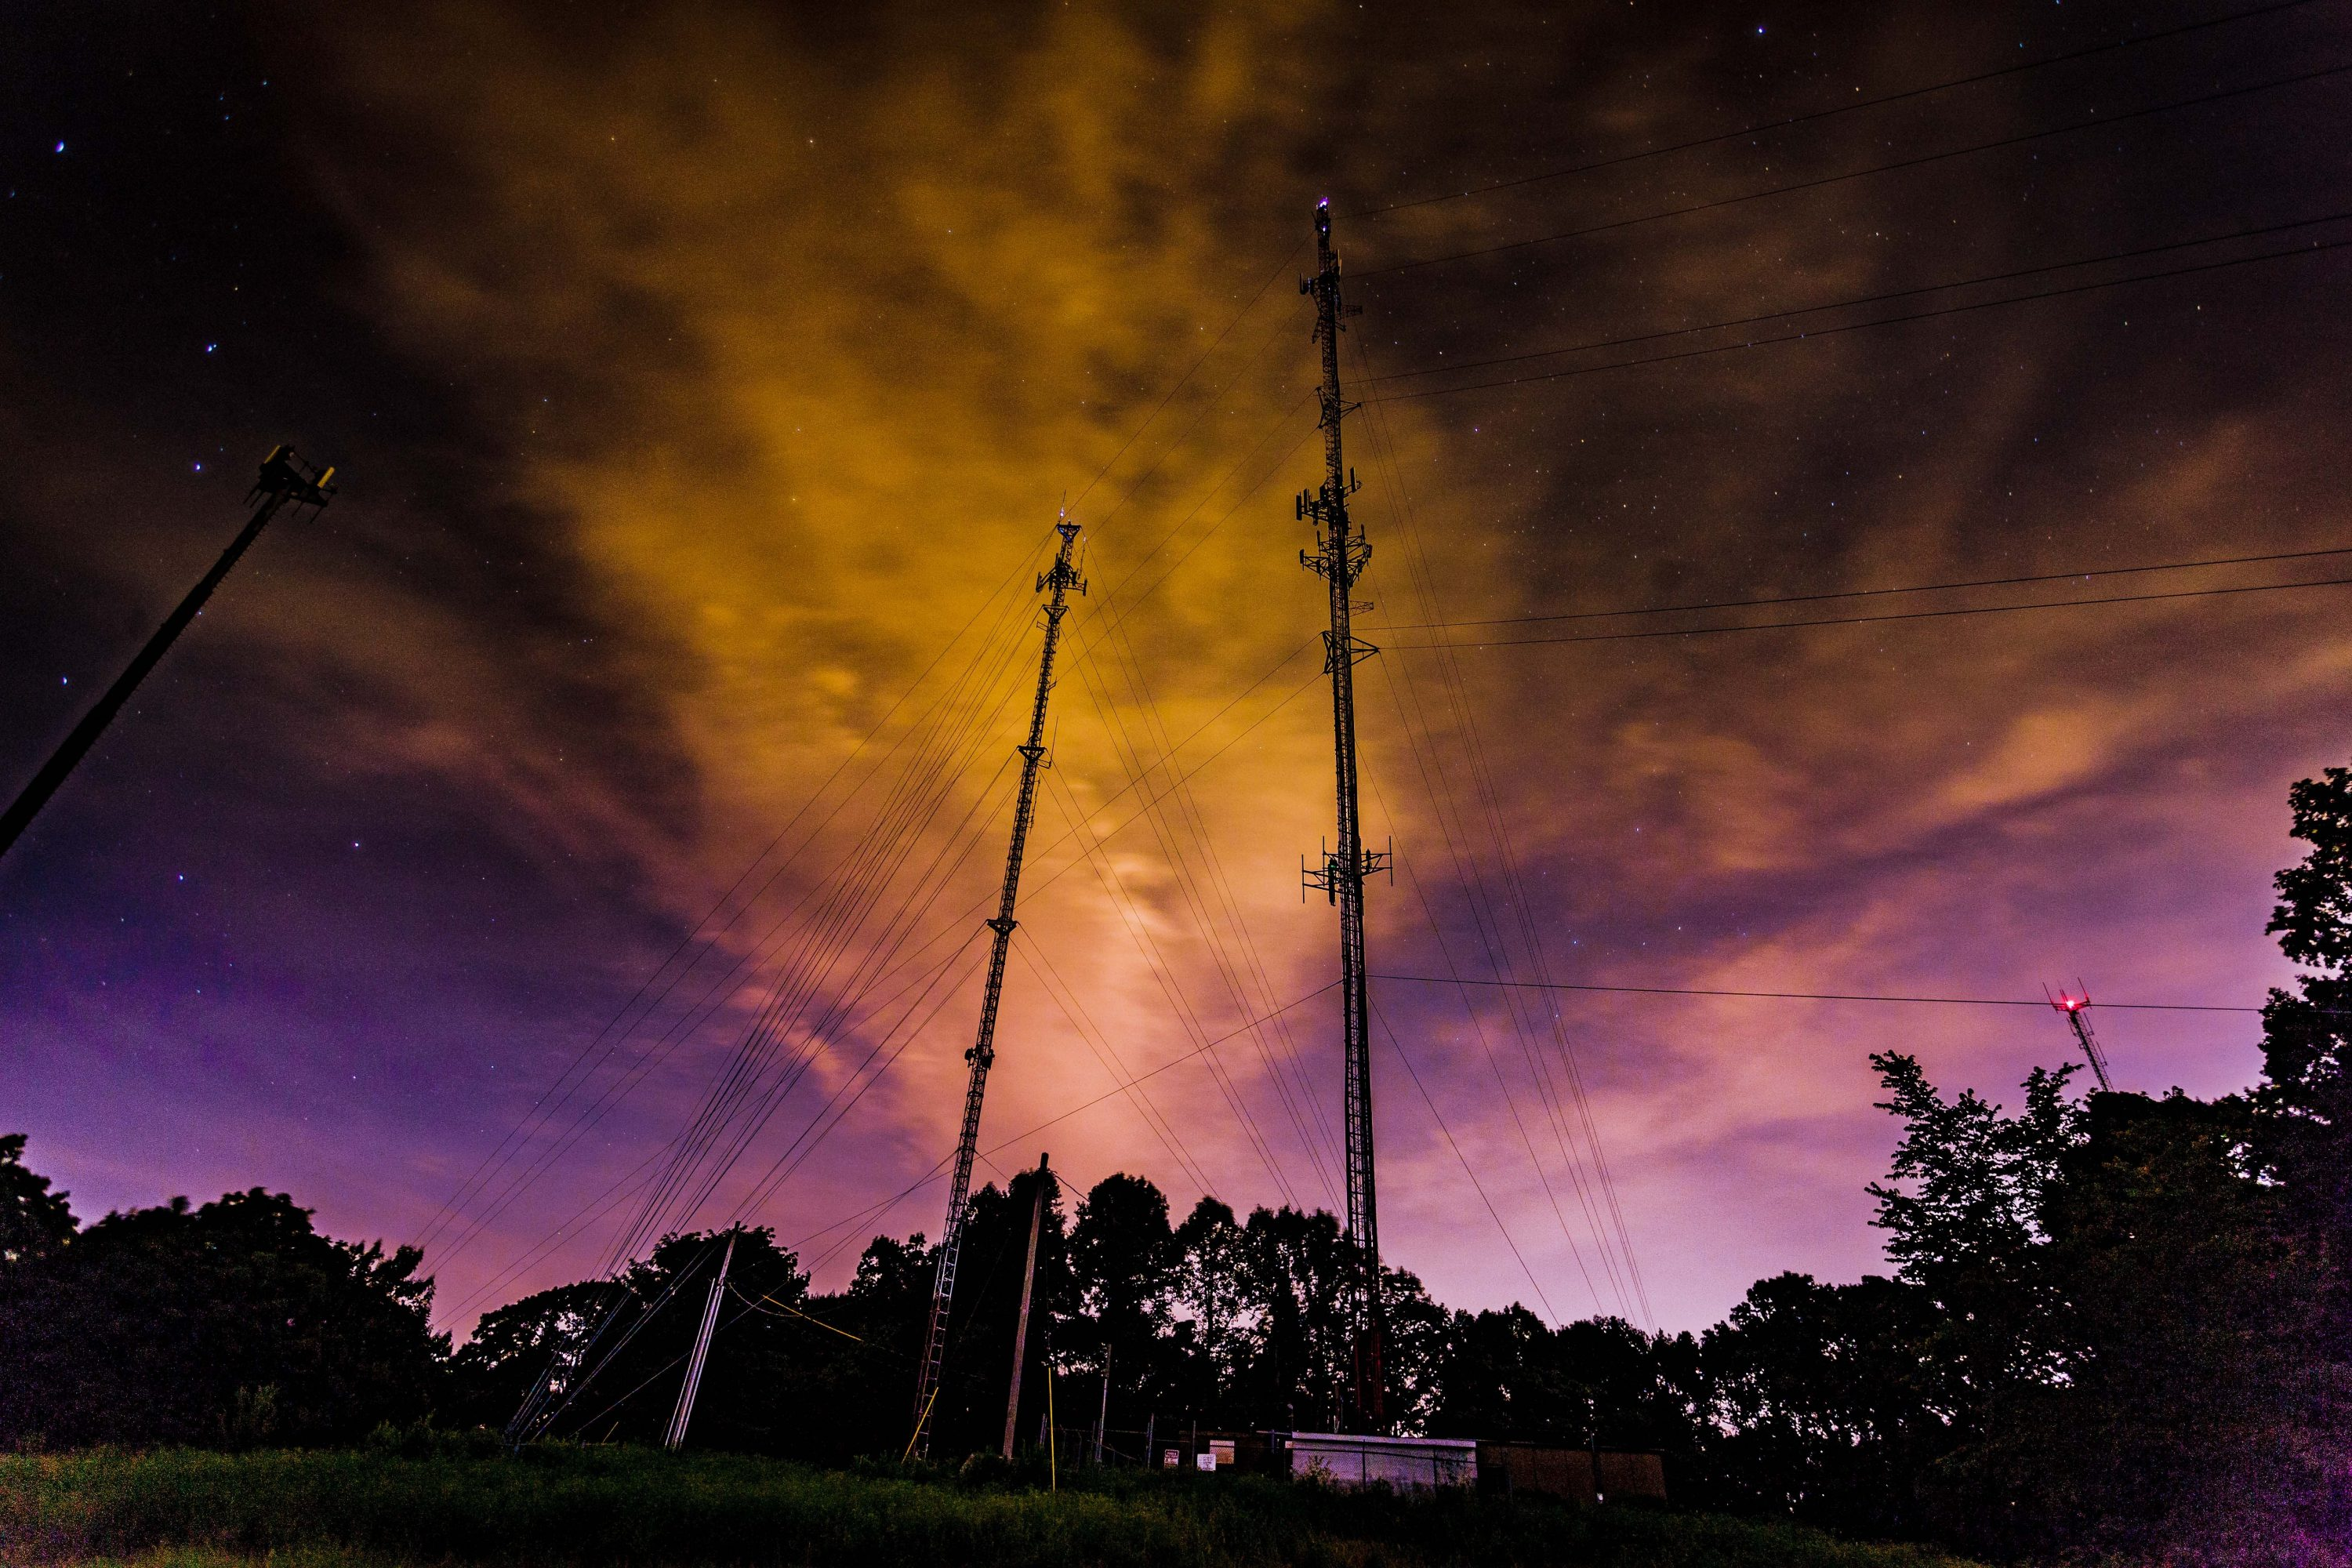 Worried about 5G and Cancer? Here's Why Wireless Networks Pose No Health Risk